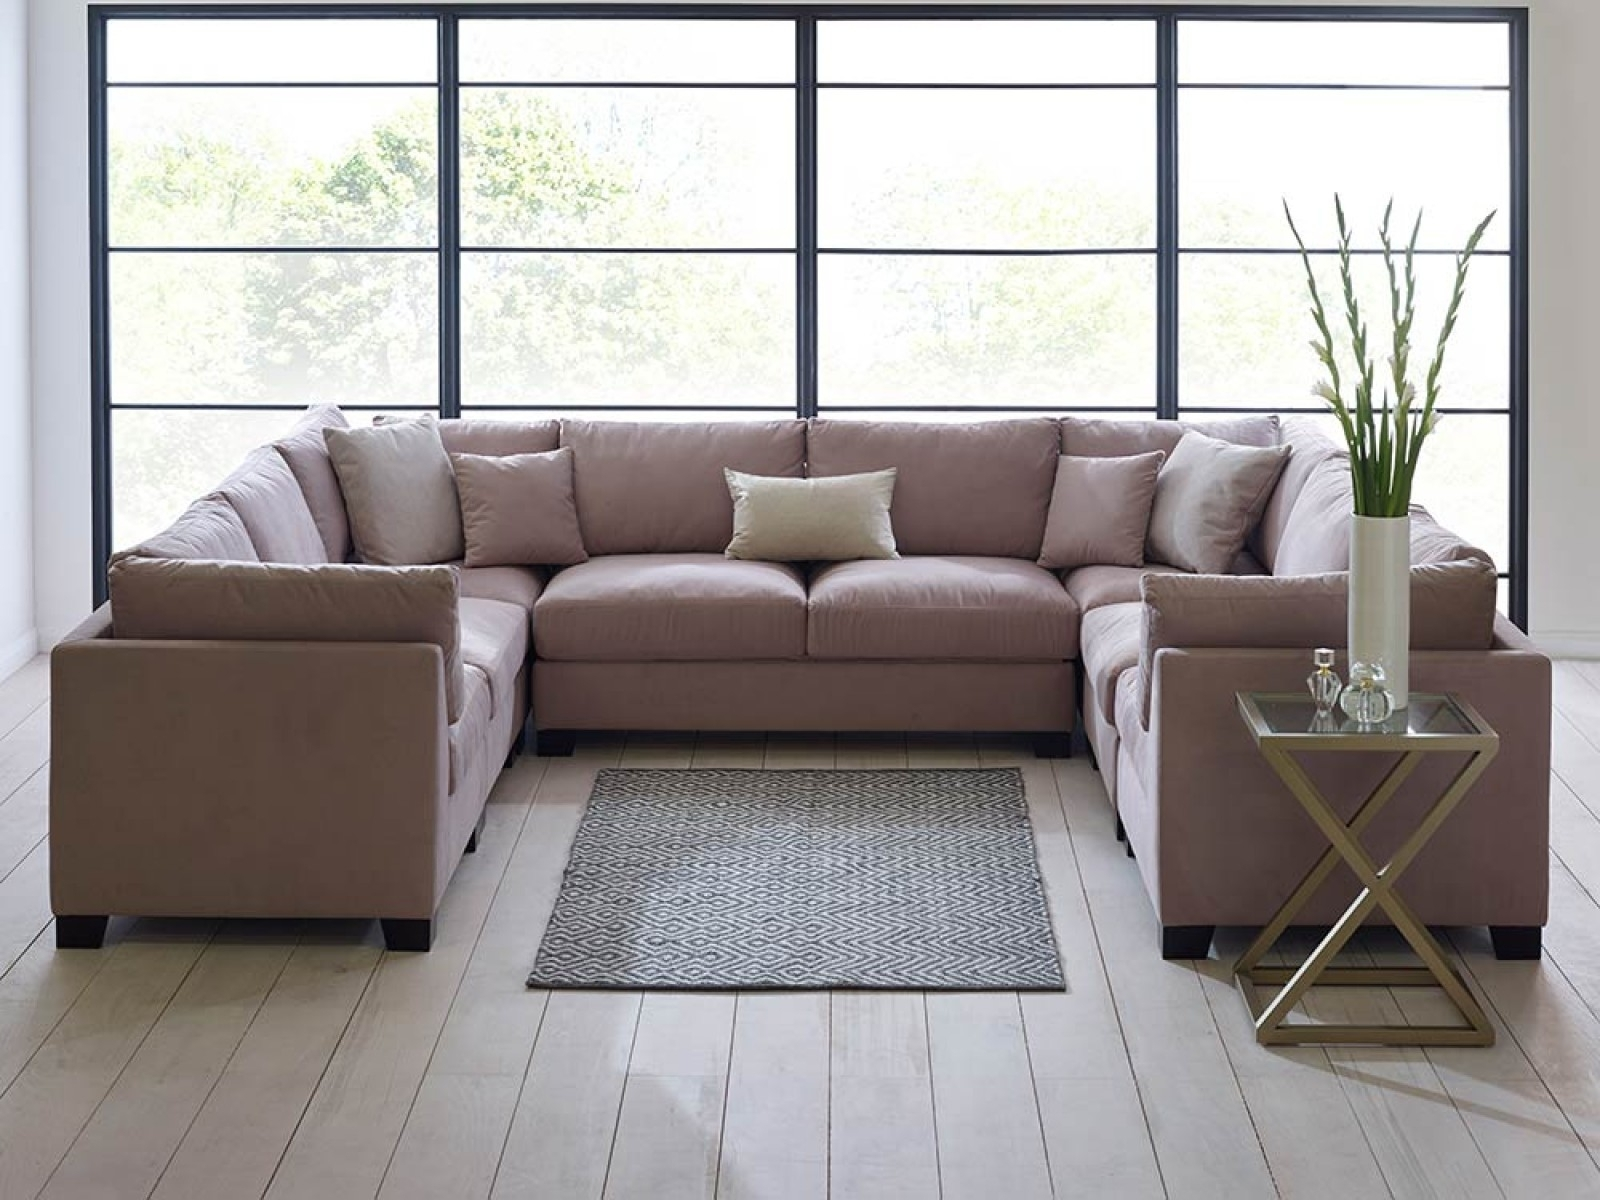 Sofa Set With Huge U Shaped Sectionals (View 17 of 20)